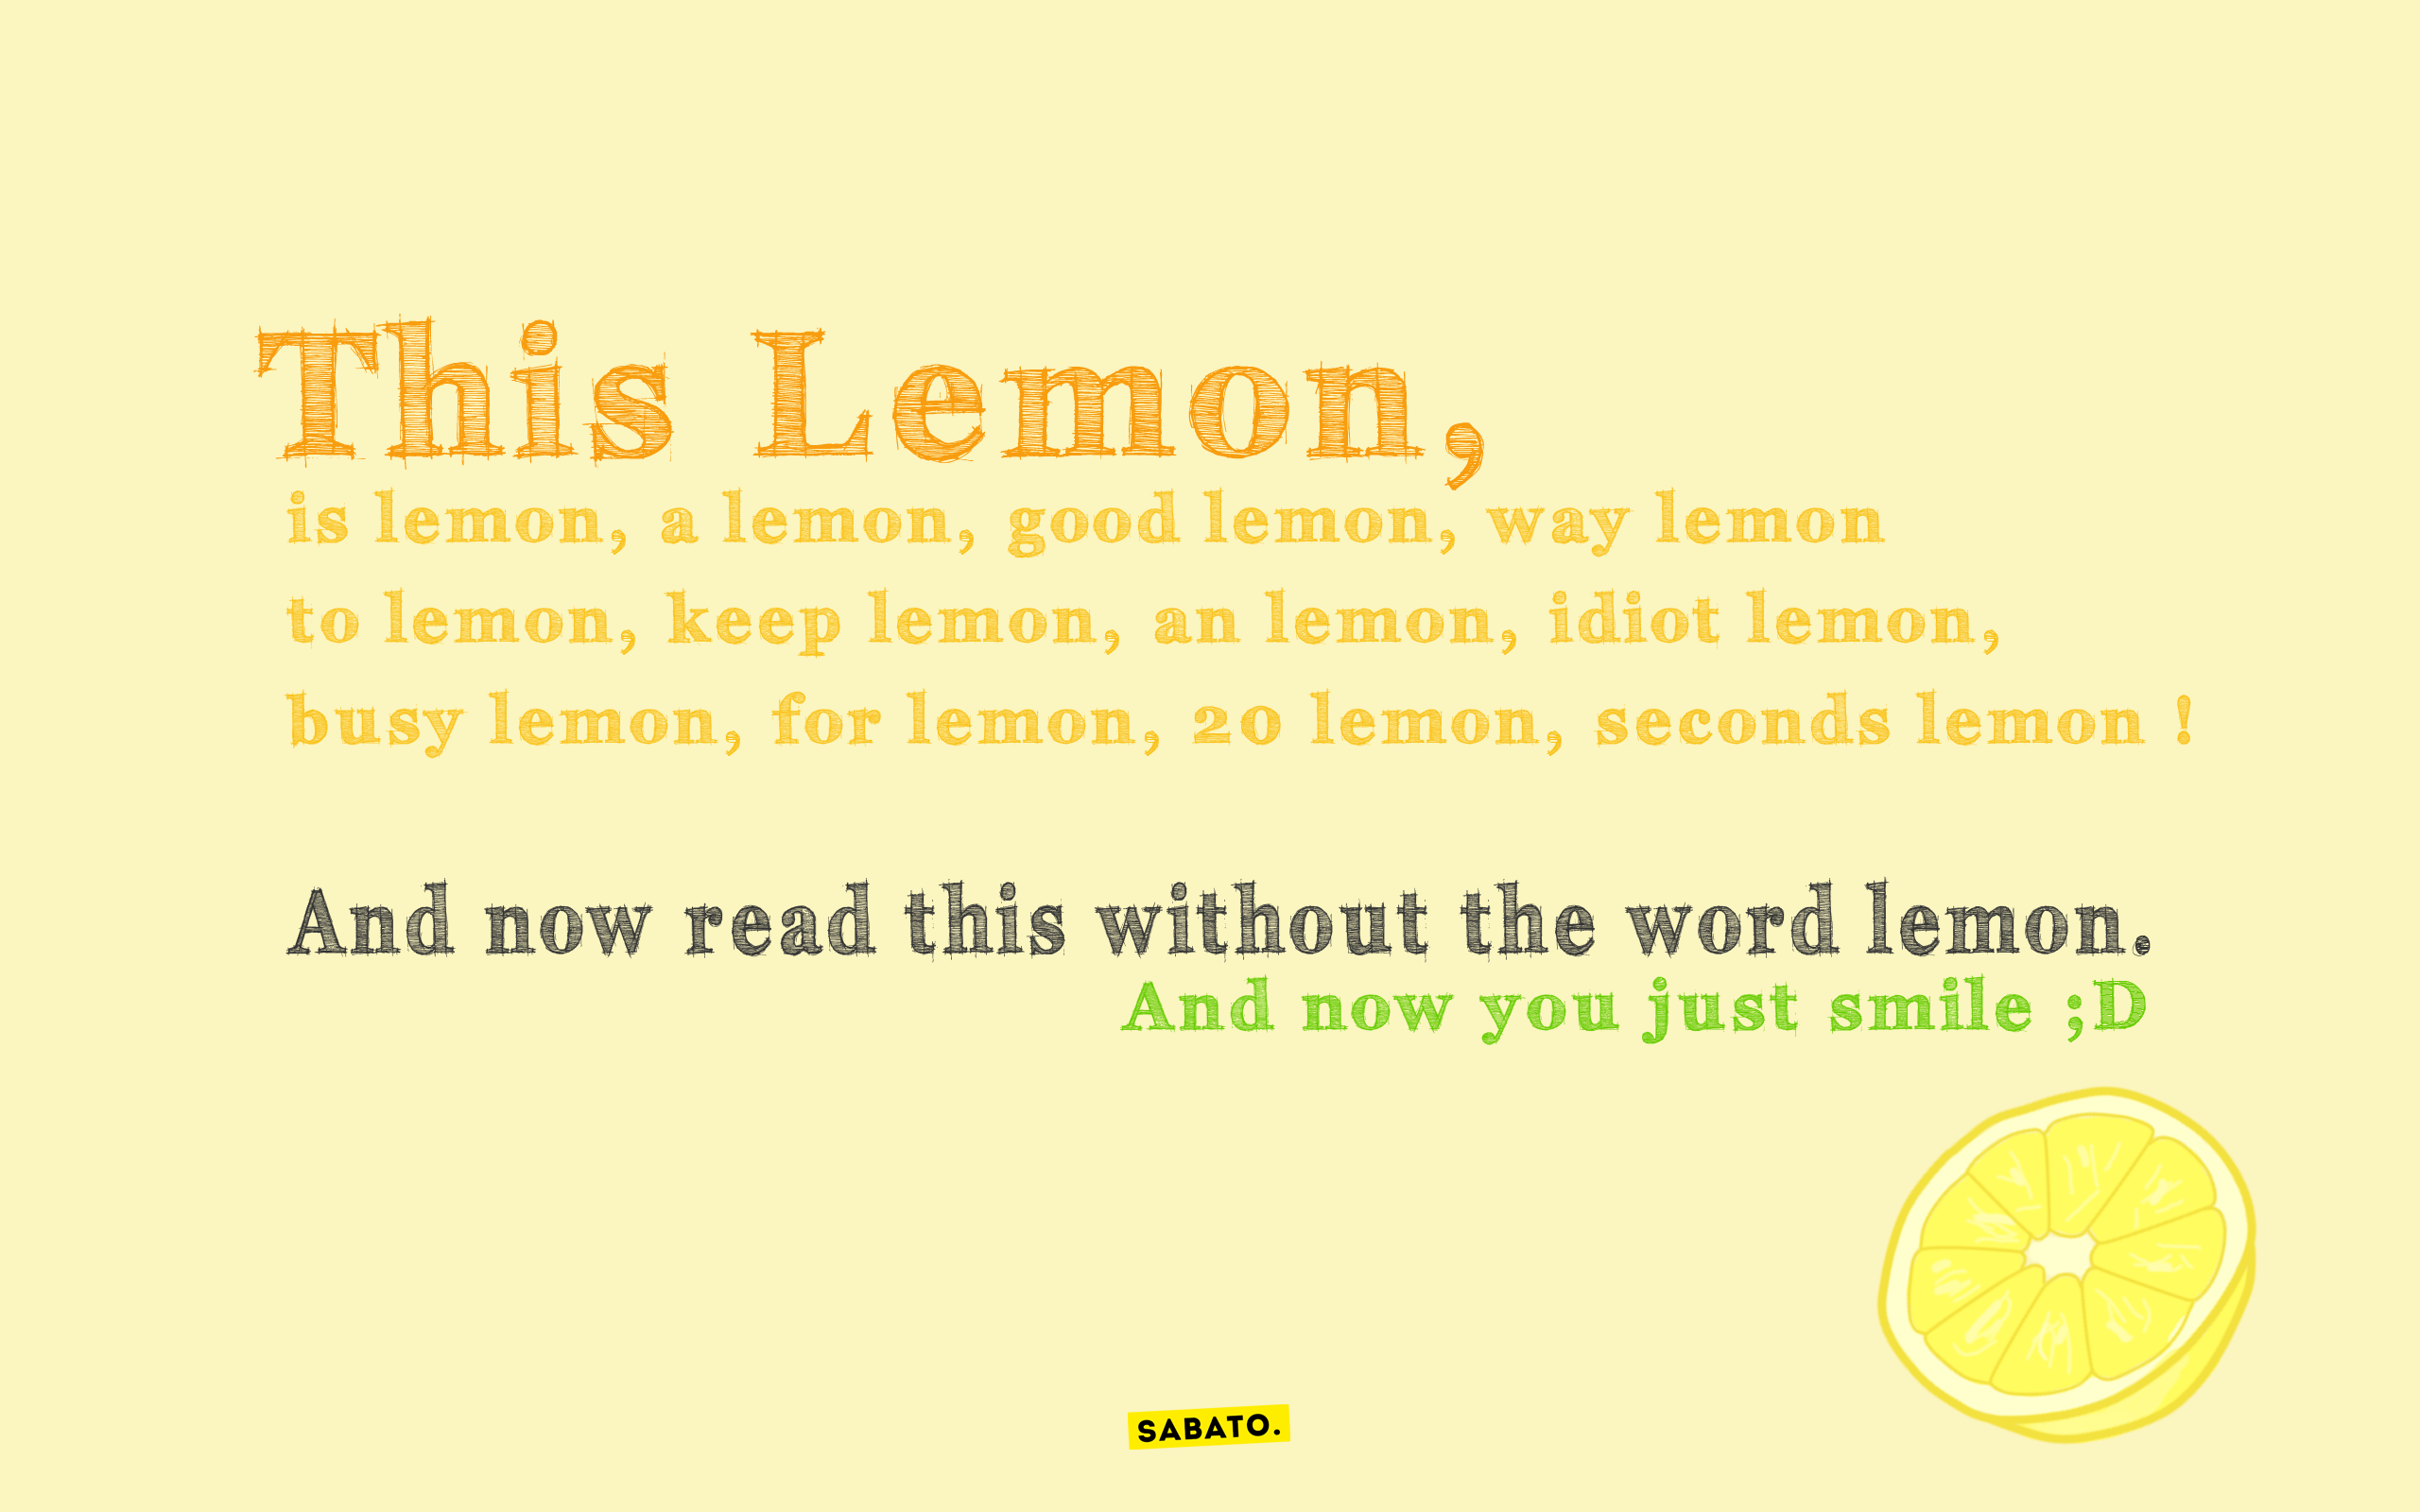 This Lemon, by LilianaSabato